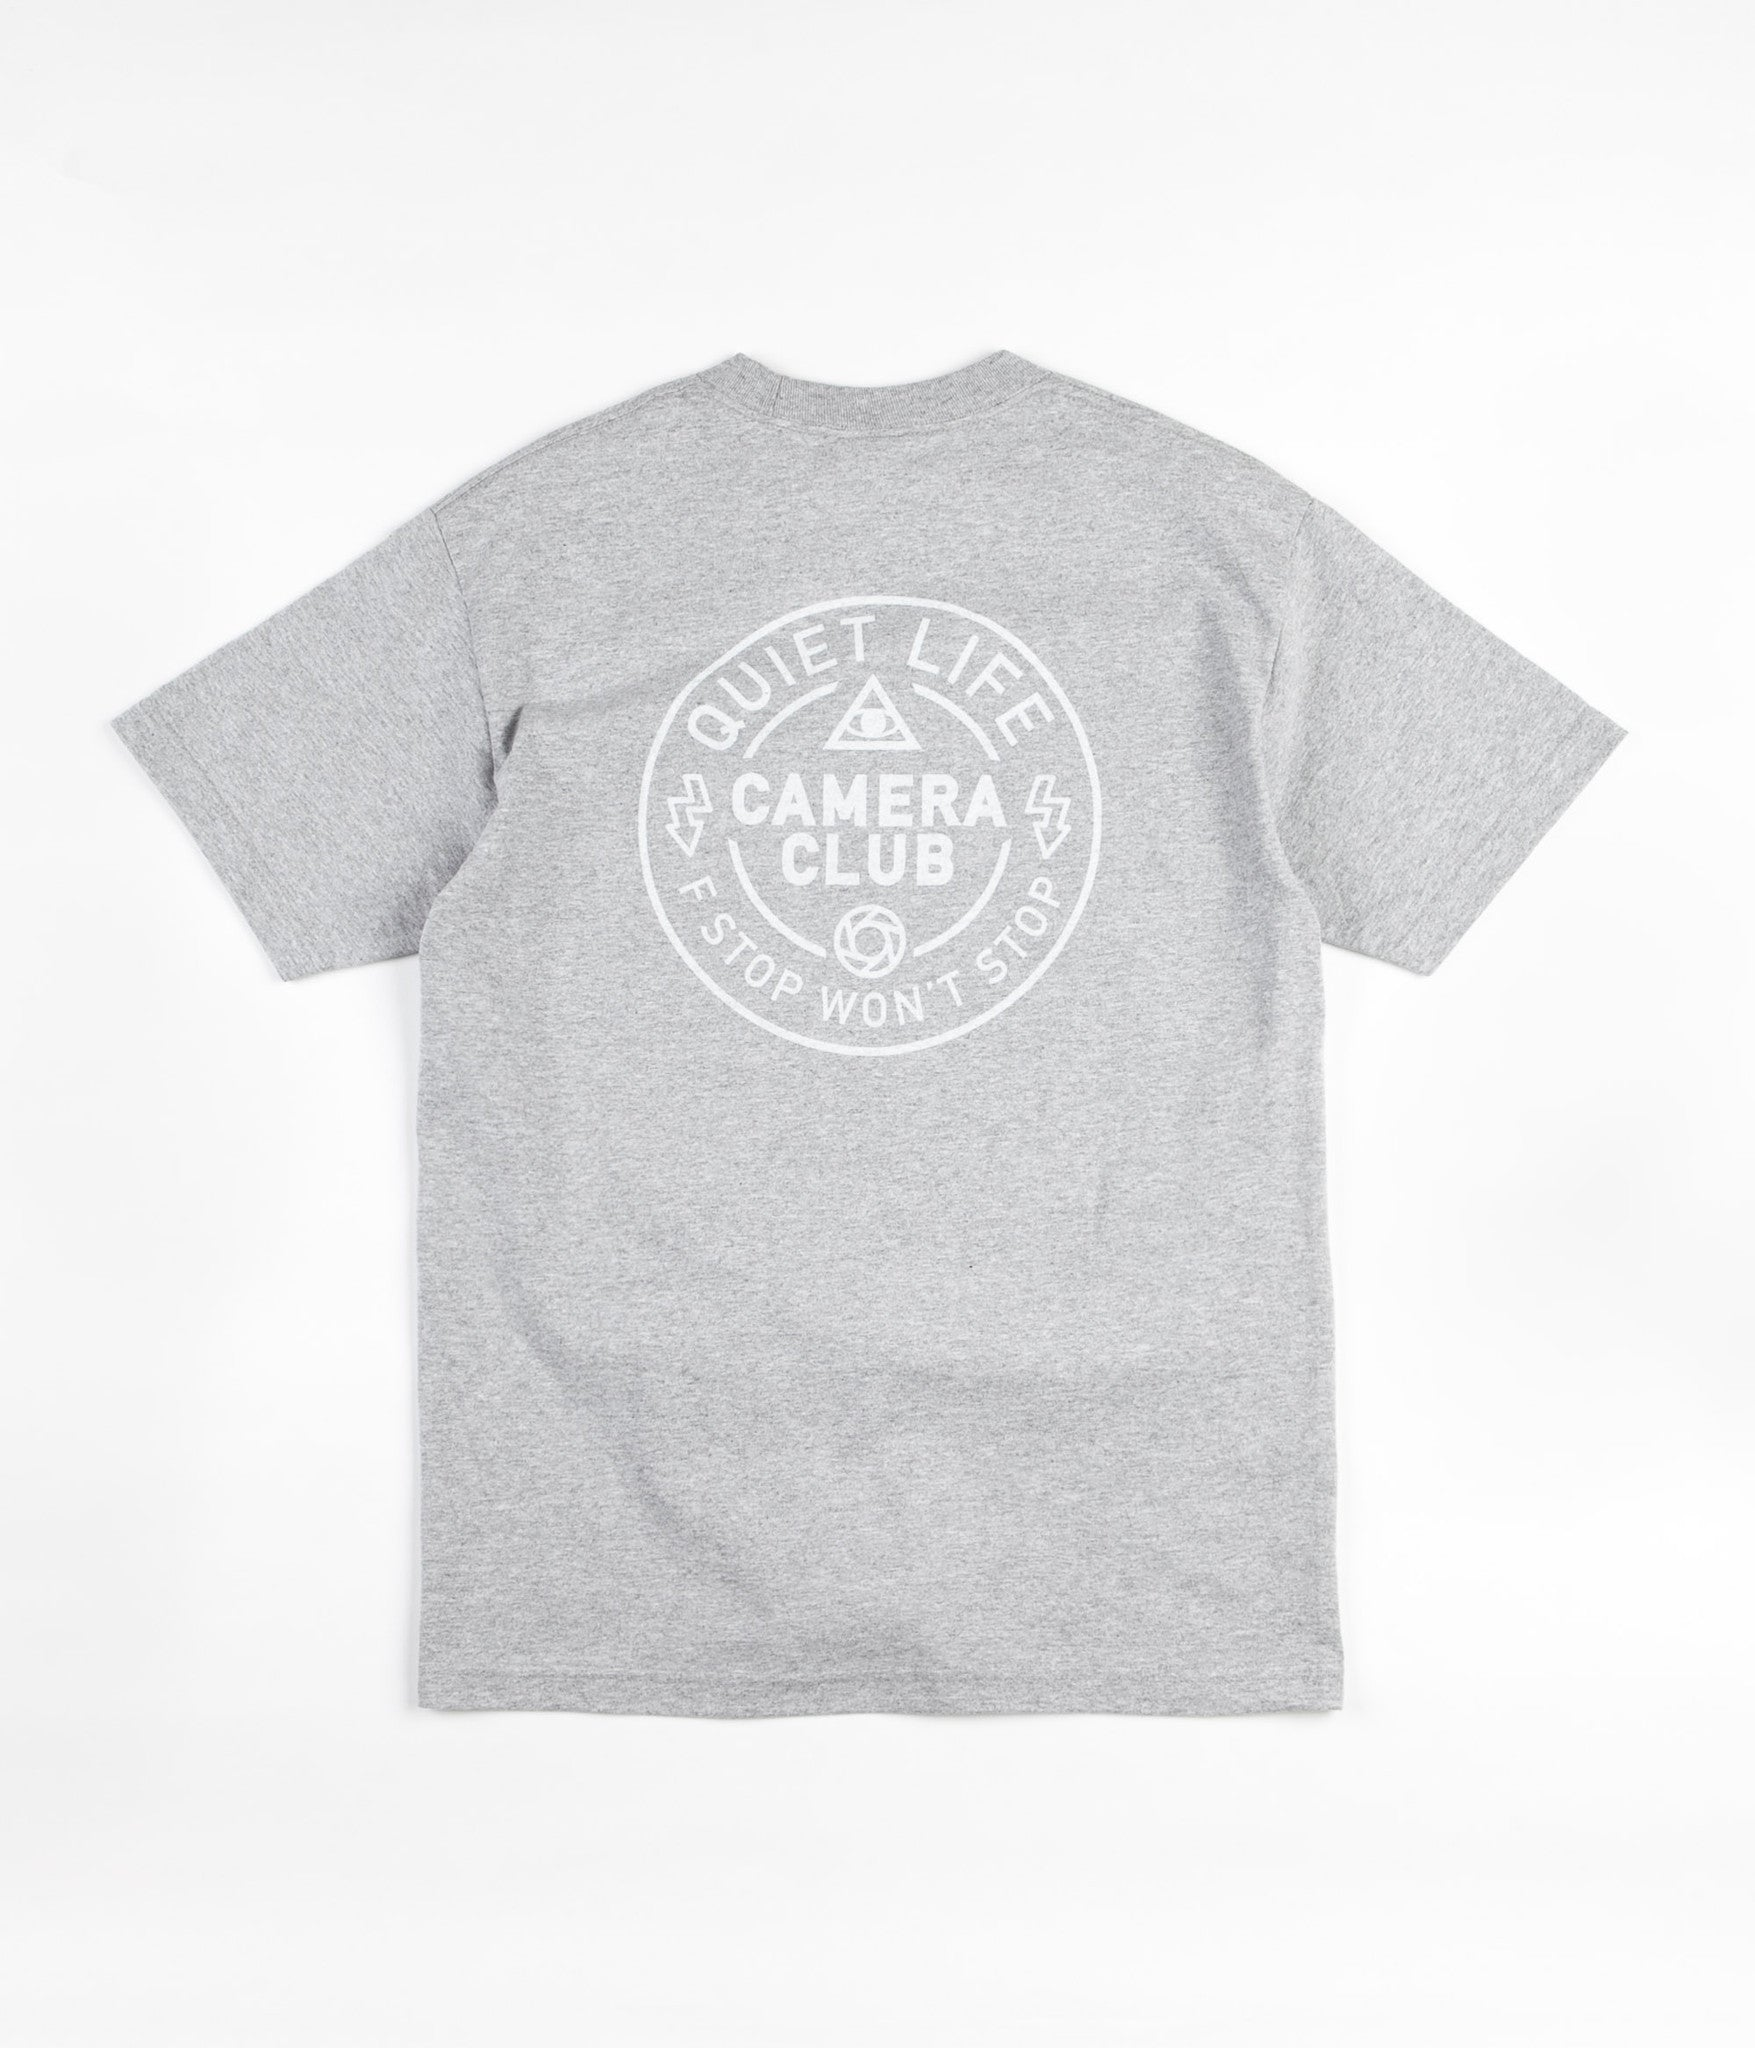 The Quiet Life Won't Stop T-Shirt - Heather Grey